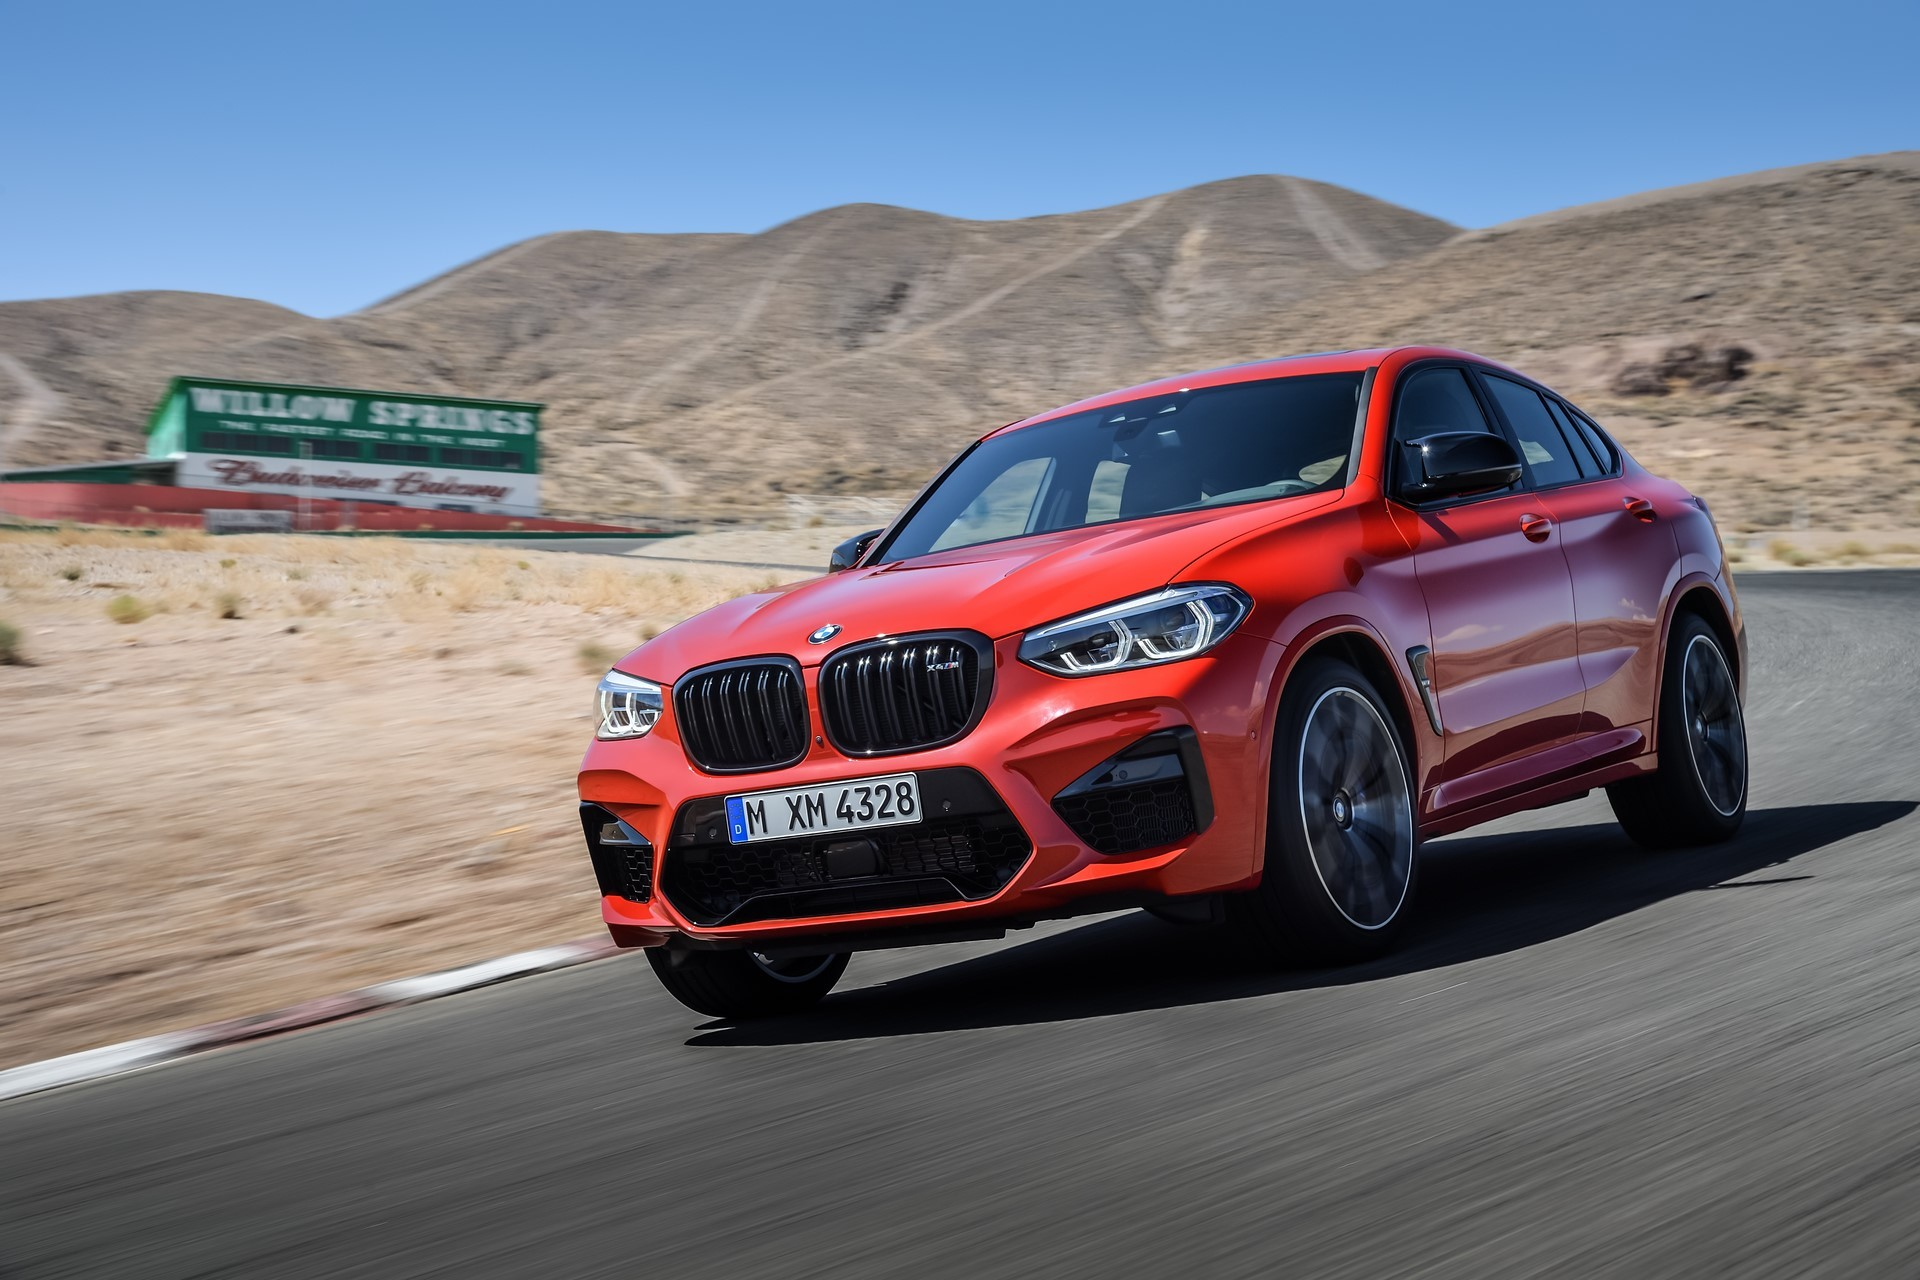 BMW X3 M and X4 M 2019 (63)